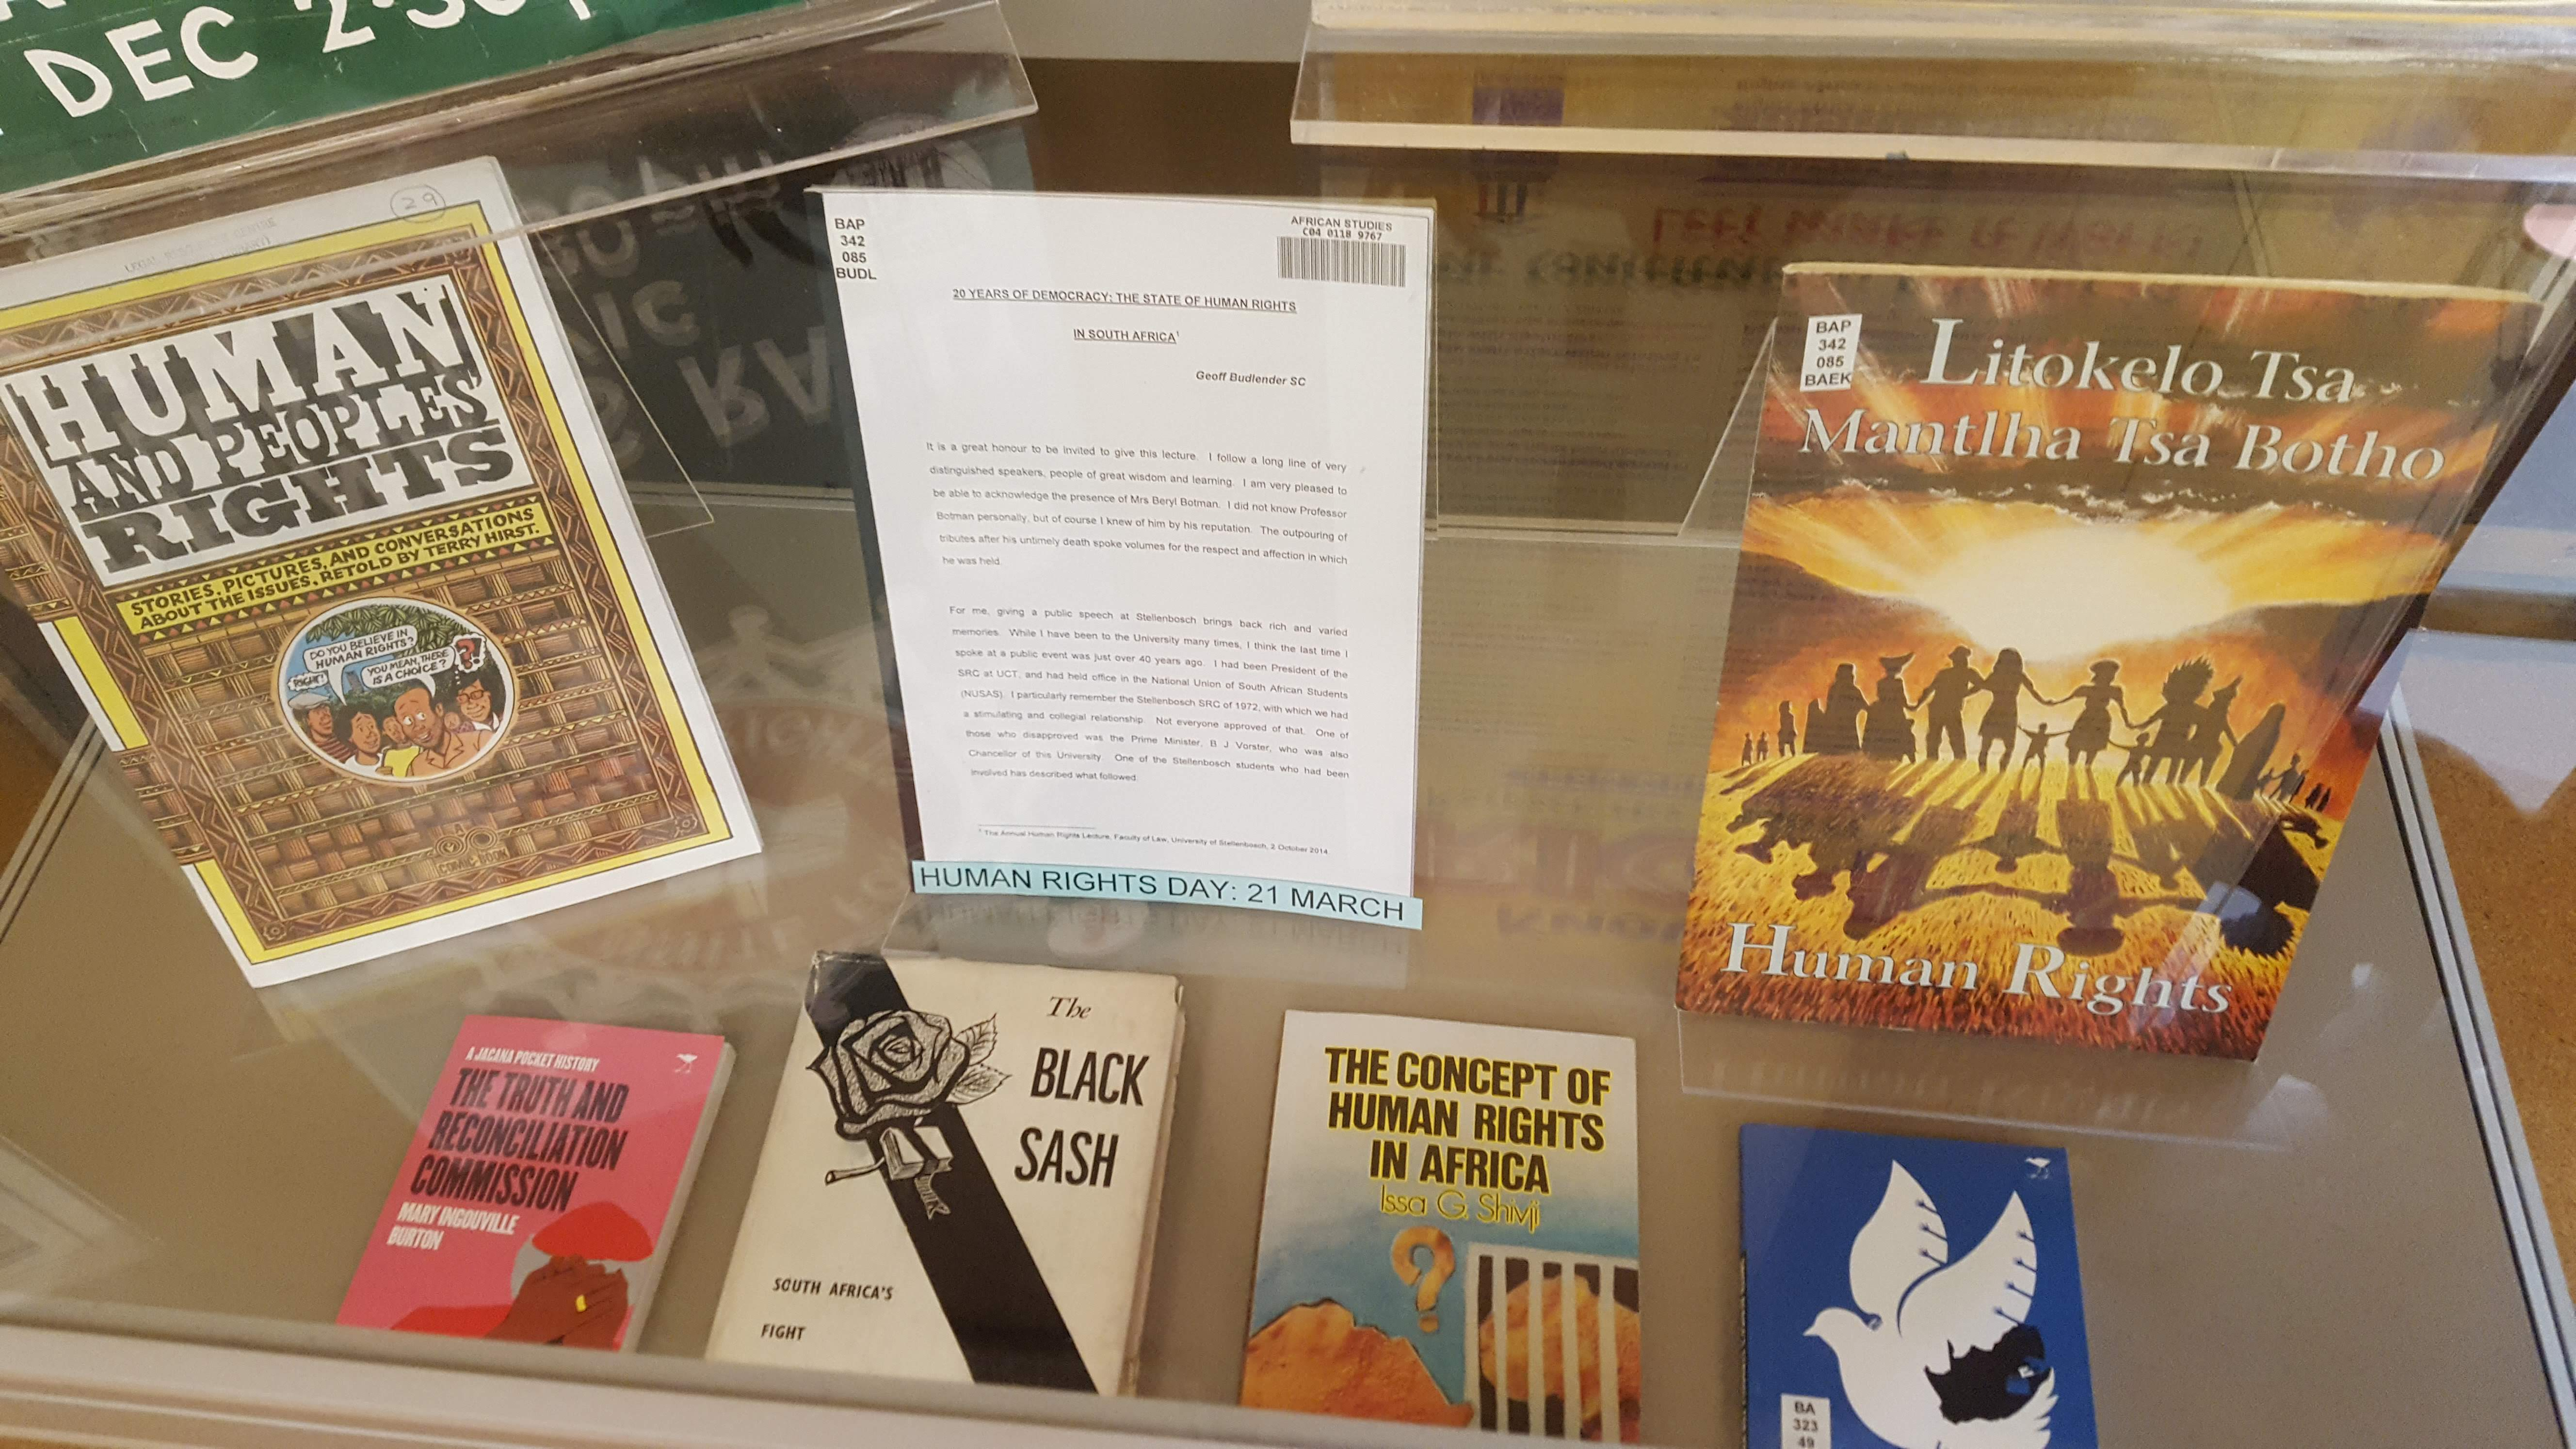 Books about human rights on display